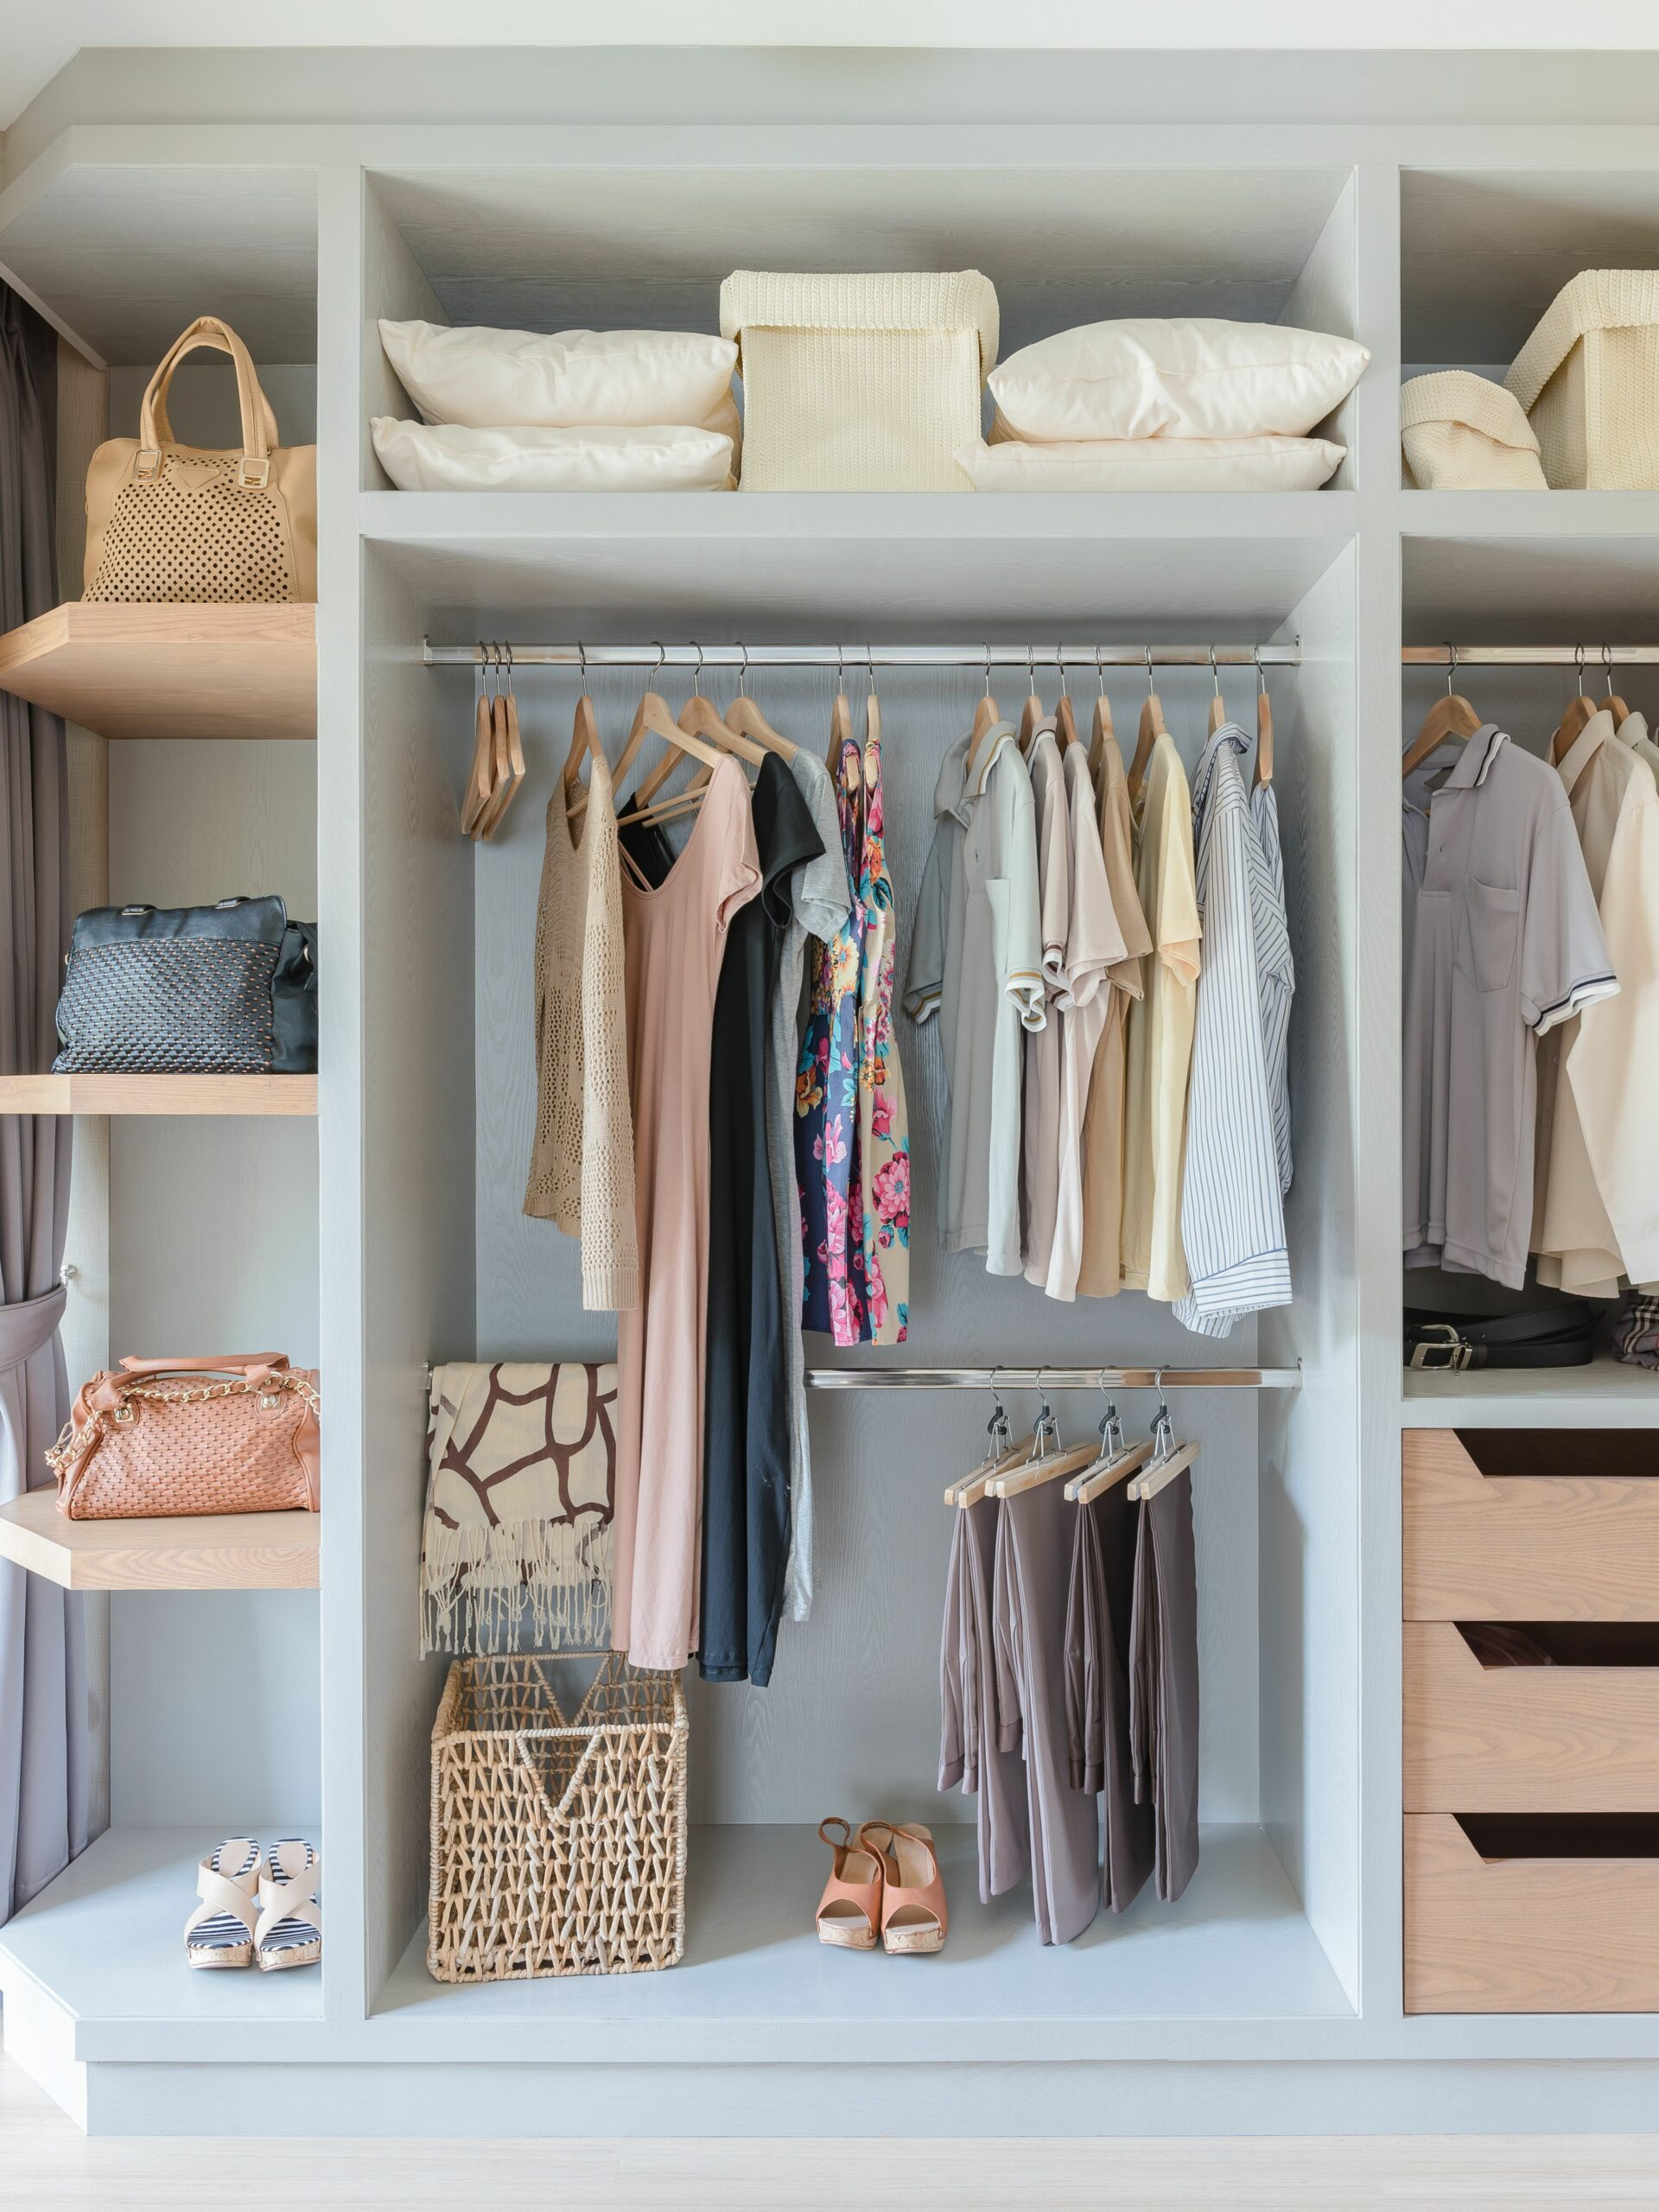 12 Best Closet Organization Ideas to Maximize Space and Style ..